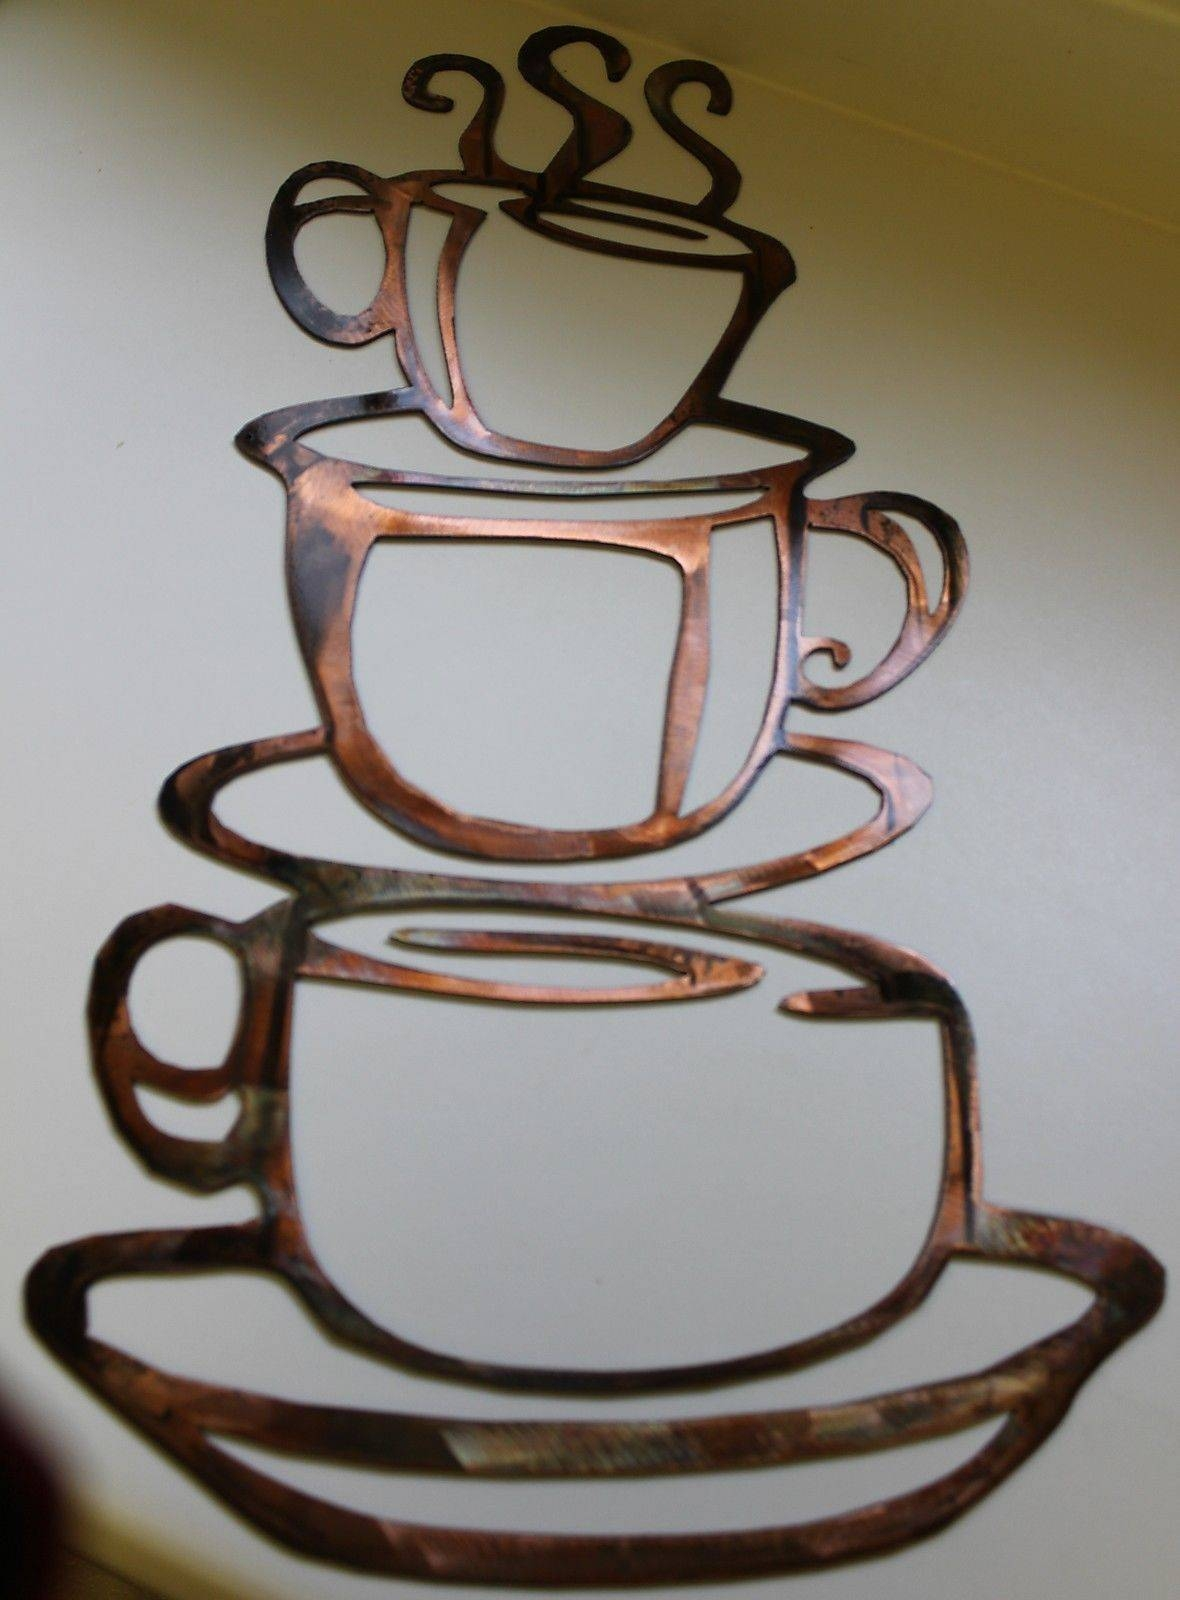 Outstanding 3d Metal Coffee Cup Wall Art Perfect Indulgence Coffee With Most Current Metal Coffee Cup Wall Art (View 18 of 20)